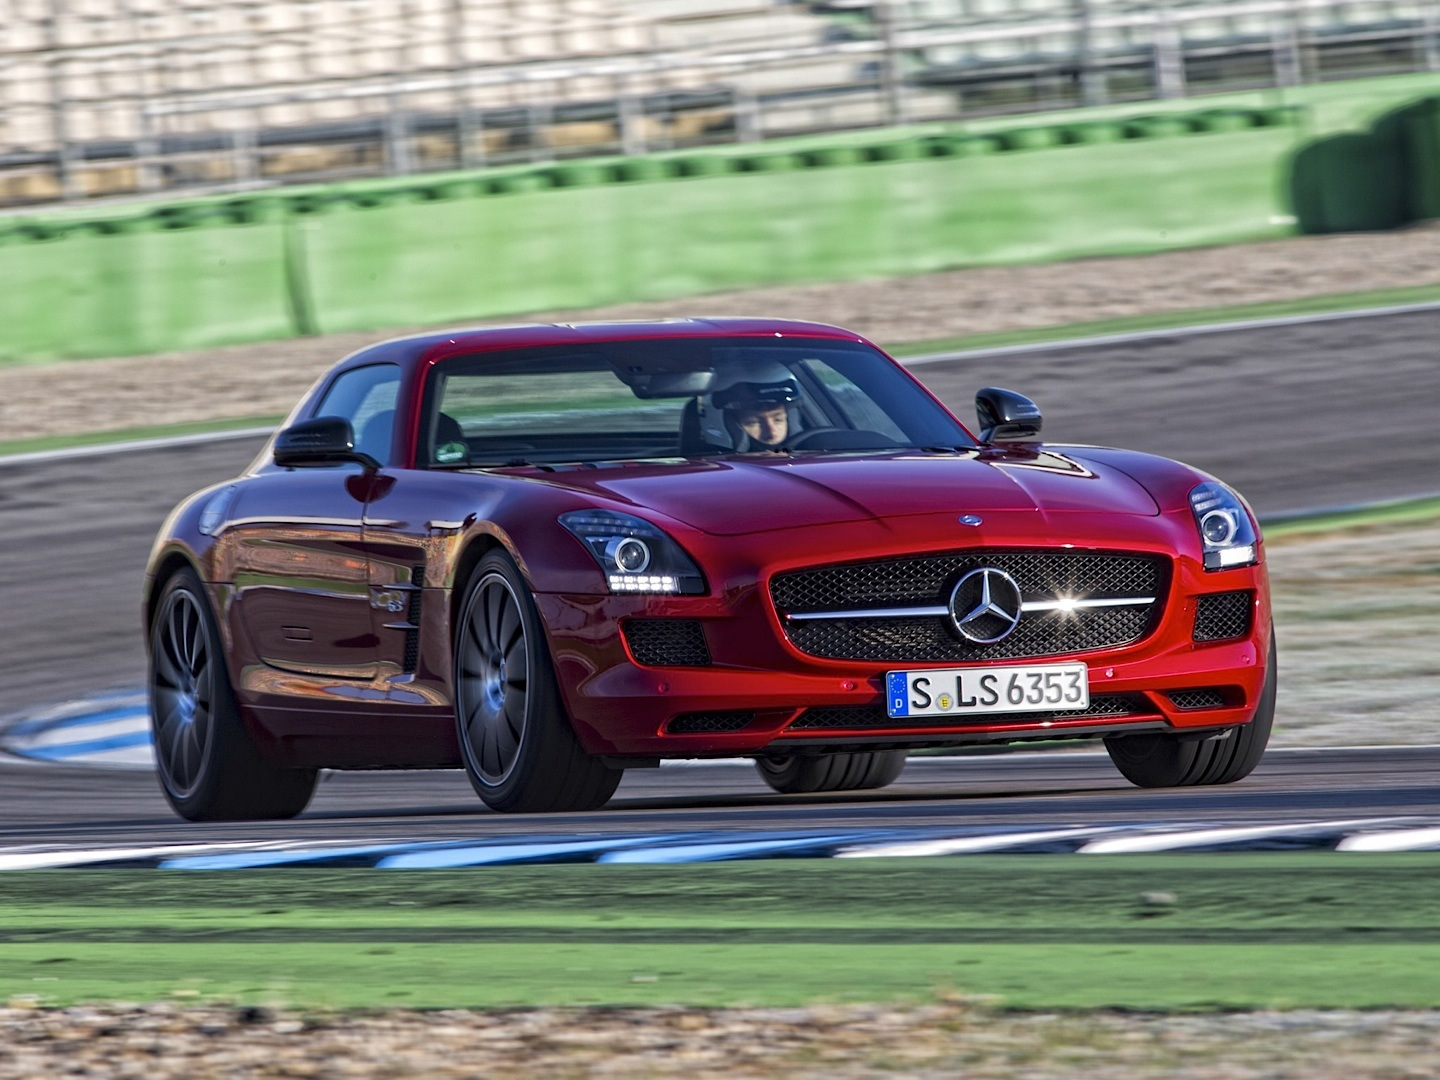 sls amg gt co pilot view and sound is terrifying autoevolution. Black Bedroom Furniture Sets. Home Design Ideas